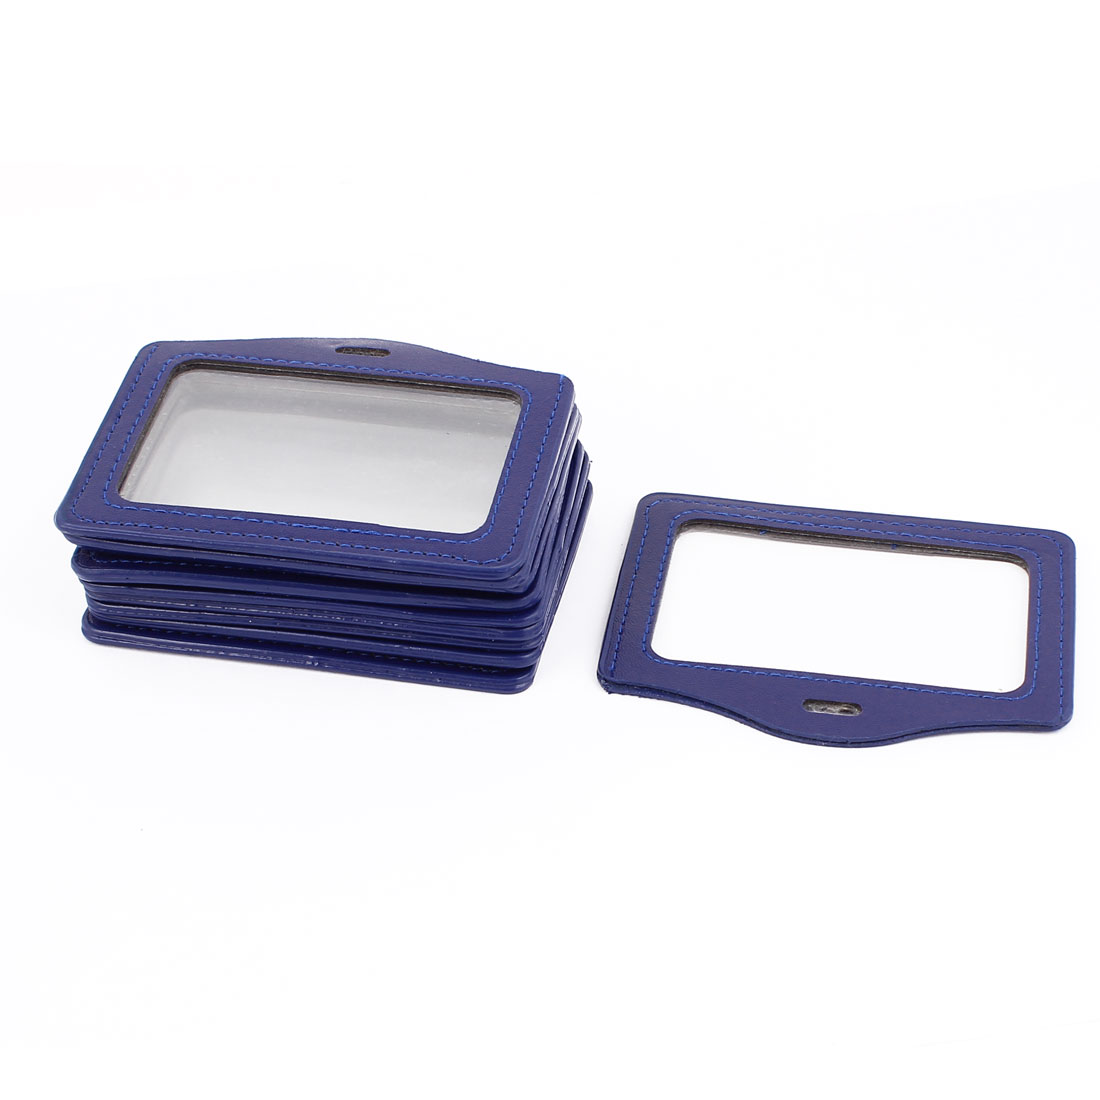 10pcs Blue Faux Leather School Office Double Sides Horizontal Business ID Badge Card Holder Container